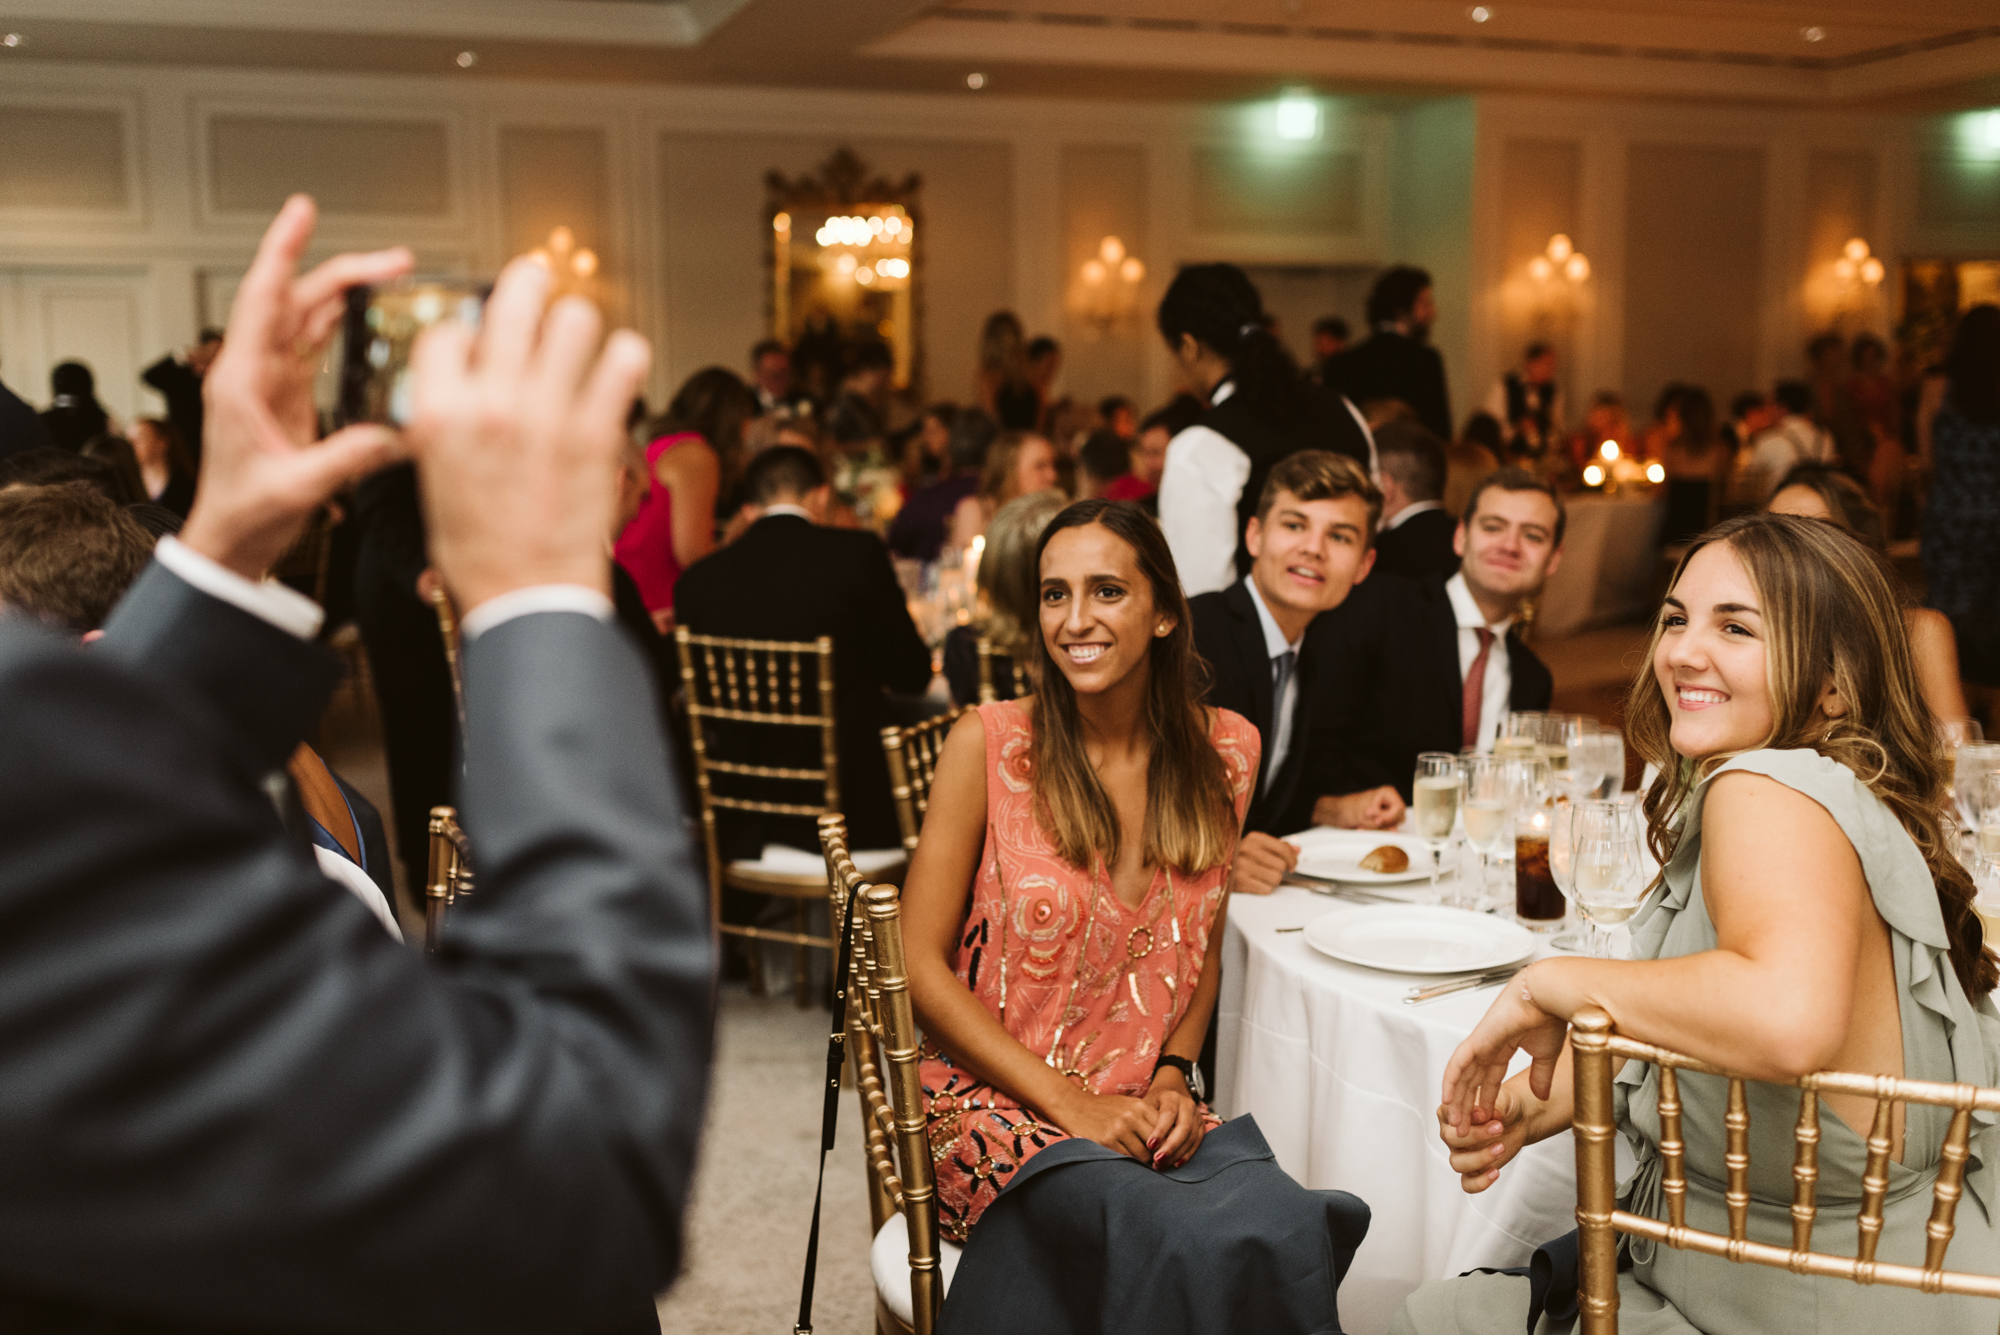 Elegant, Columbia Country Club, Chevy Chase Maryland, Baltimore Wedding Photographer, Classic, Traditional, Wedding Guests at Reception, Candid Photo